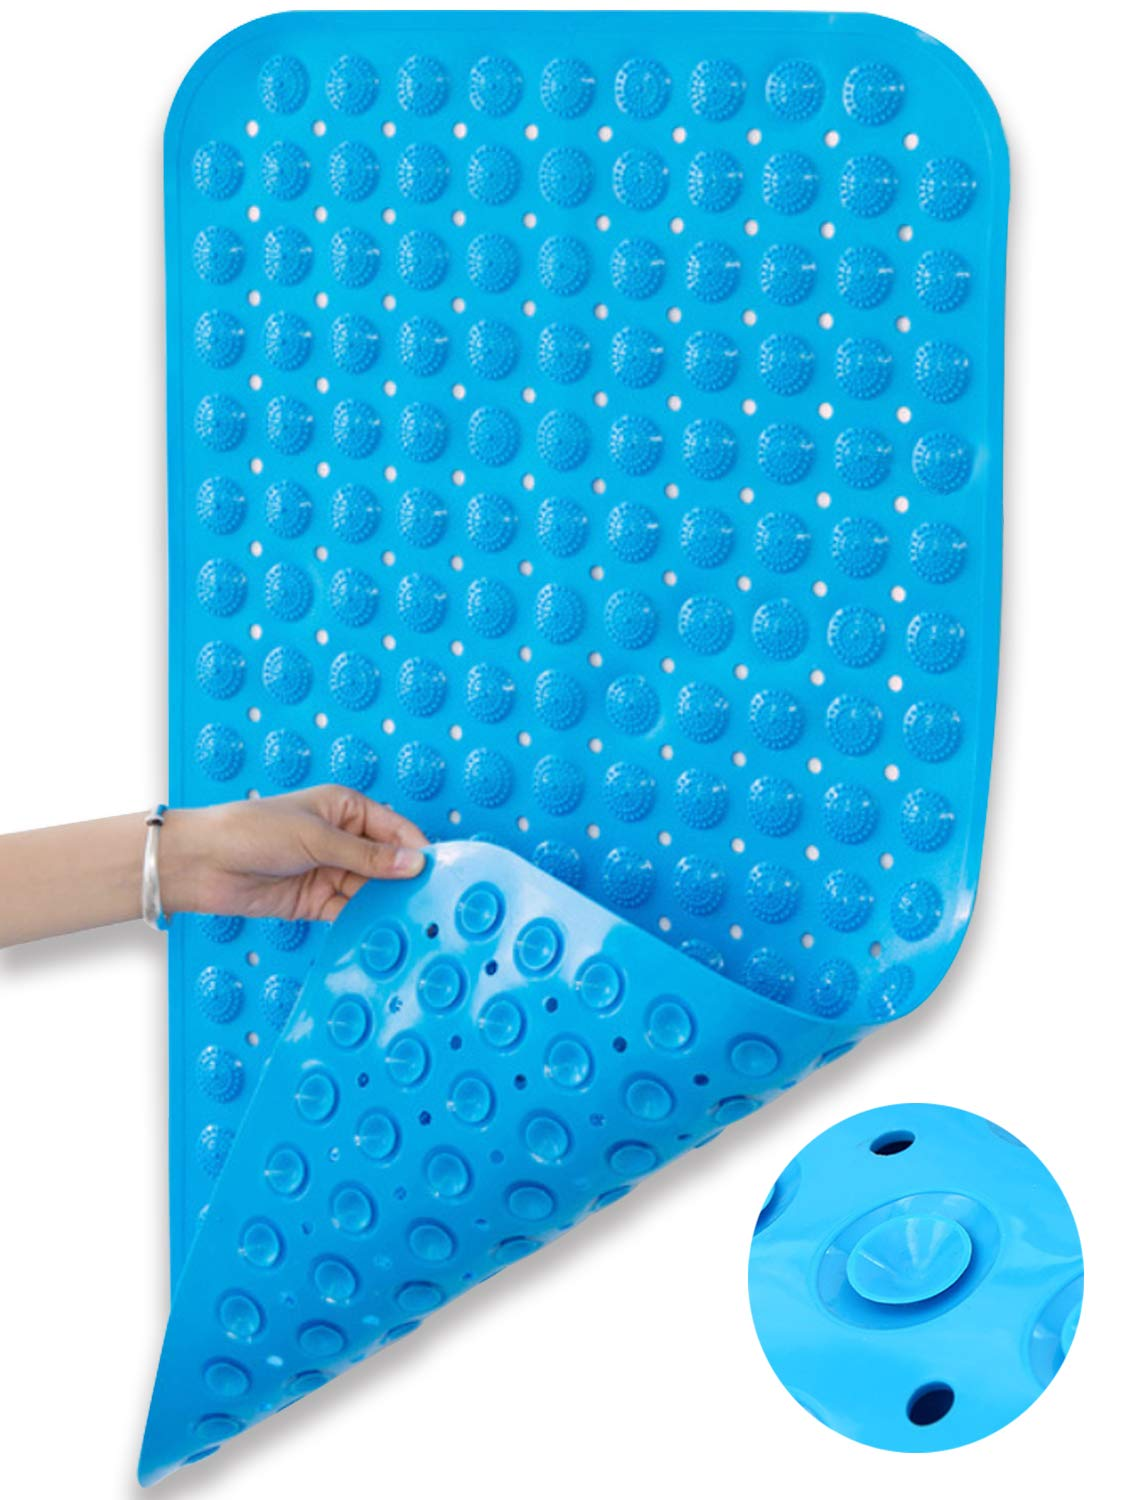 Huryfox Non Slip Bath Mat For Tub And Shower Baby Bathtub Mats Anti Skid Bathroom Accessories Pad With Suction Cups And Drain Holes For Kids Blue 15 7 X31 5